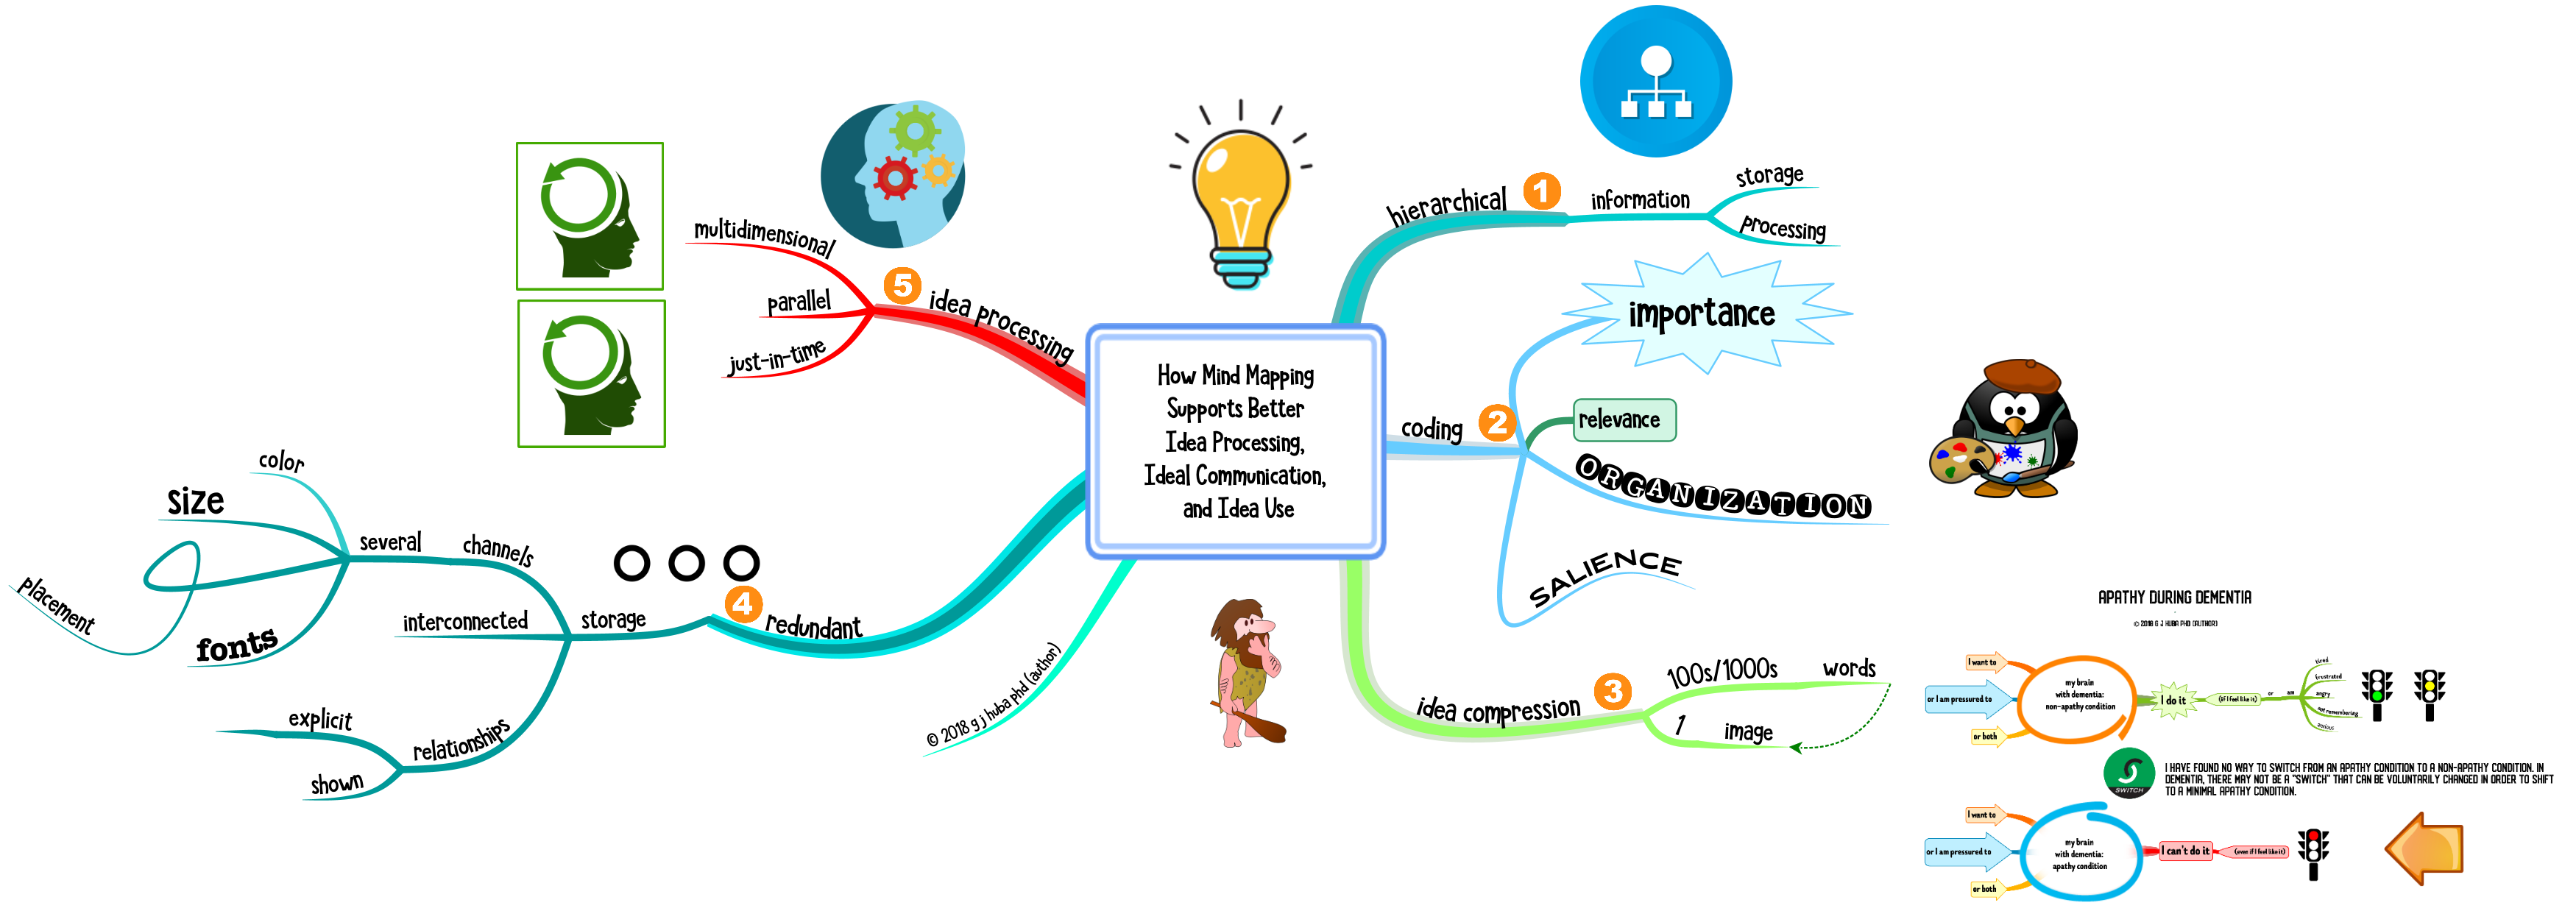 How Mind Mapping Supports Better Idea Processing, Ideal Communication, and Idea Use